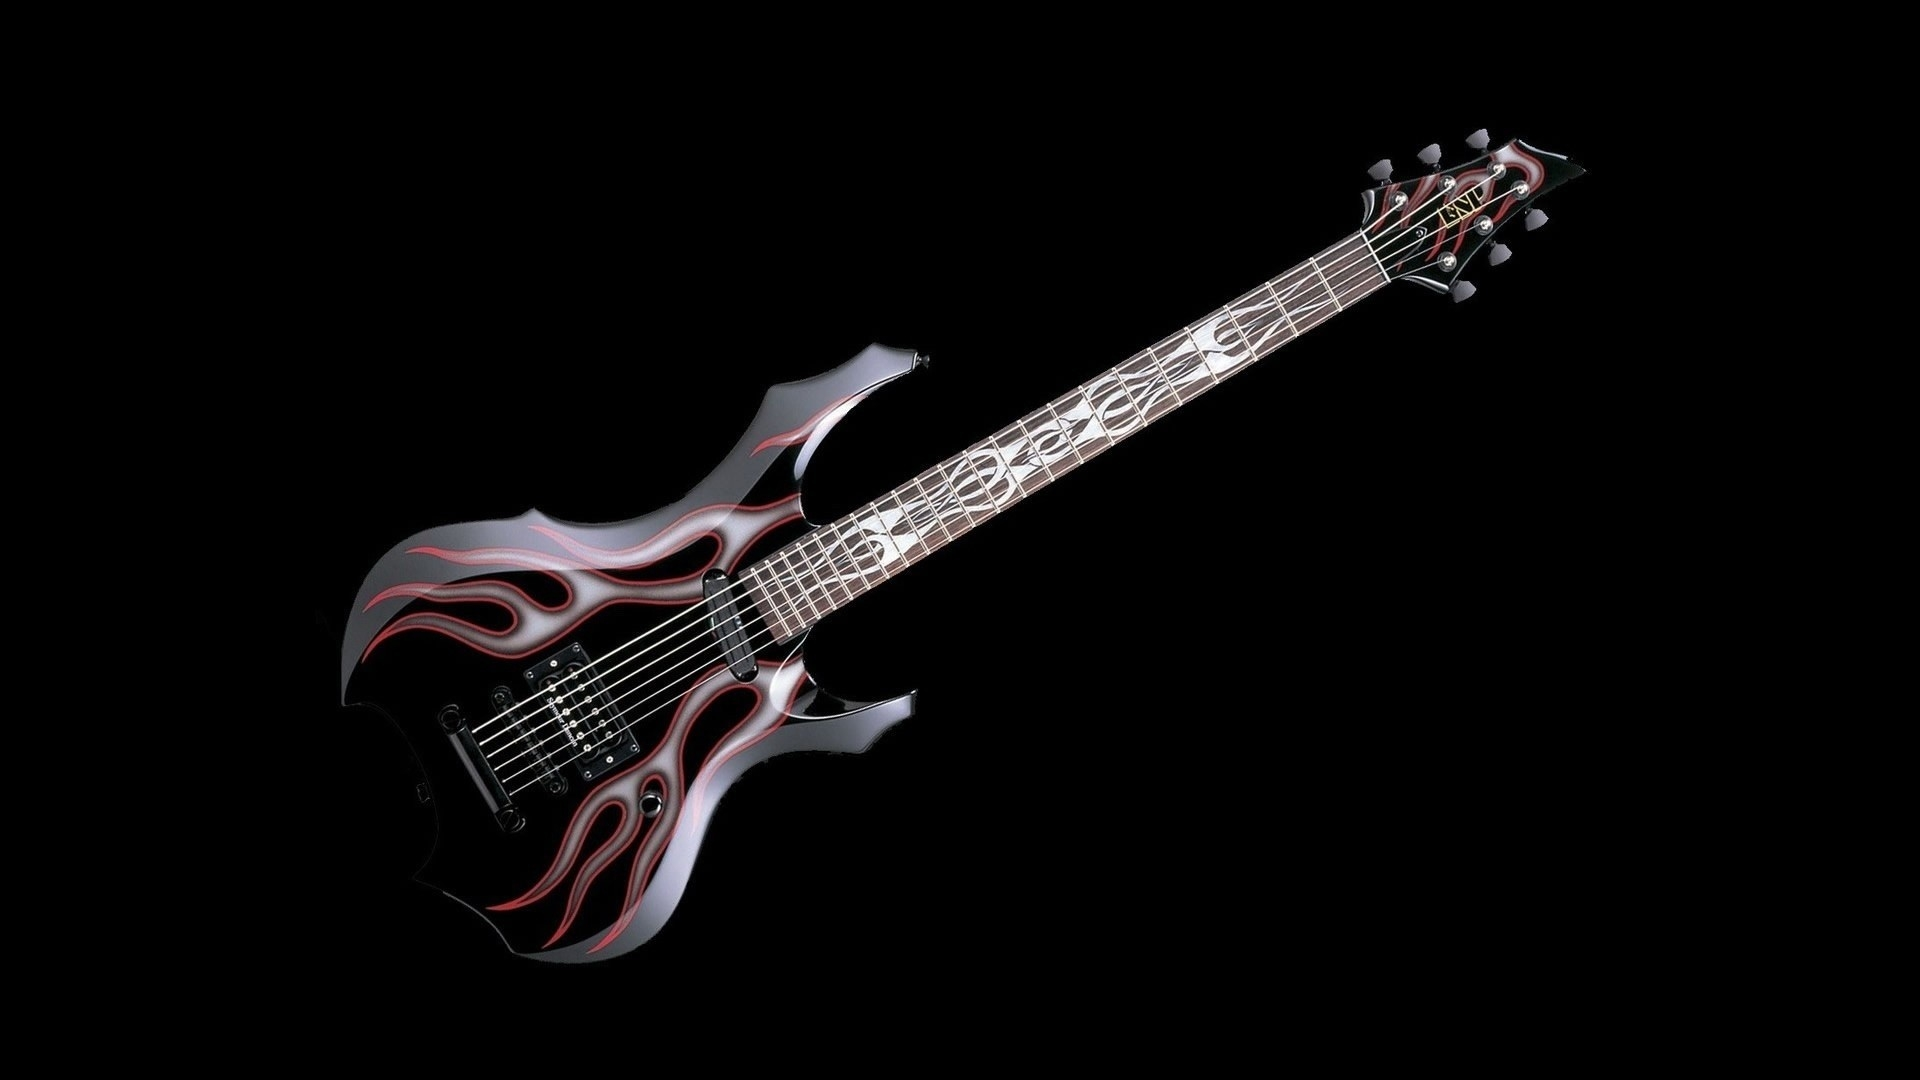 ESP GL Flame Baritone Full HD Wallpaper And Background Image